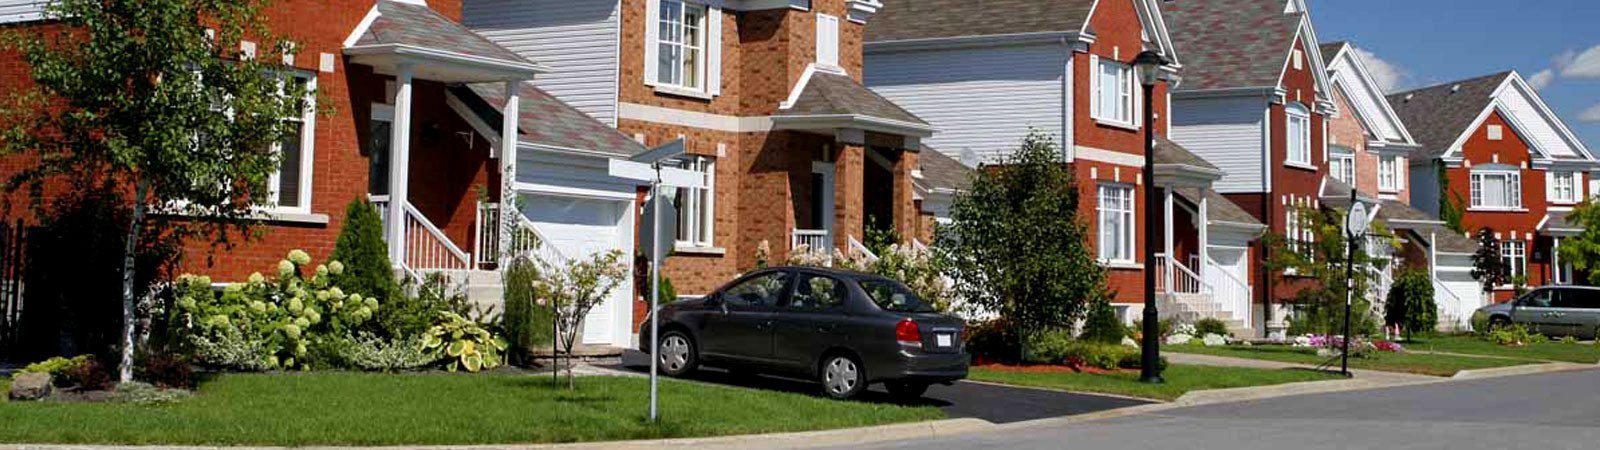 Hire a Property Management Company in Ontario